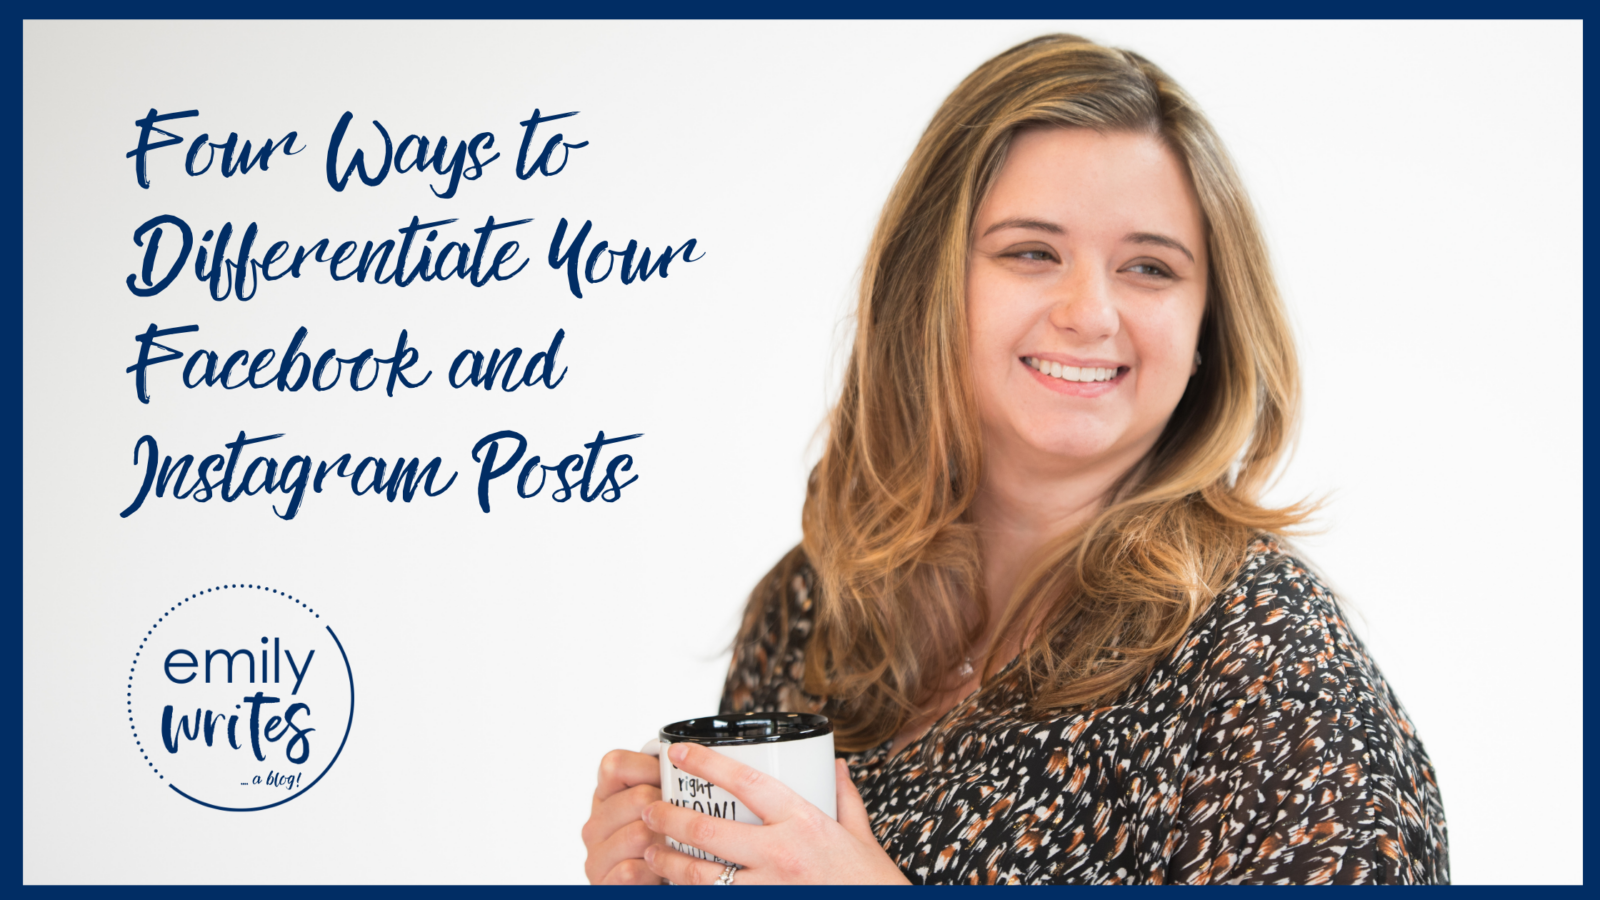 Four Ways to Differentiate Your Facebook and Instagram Posts